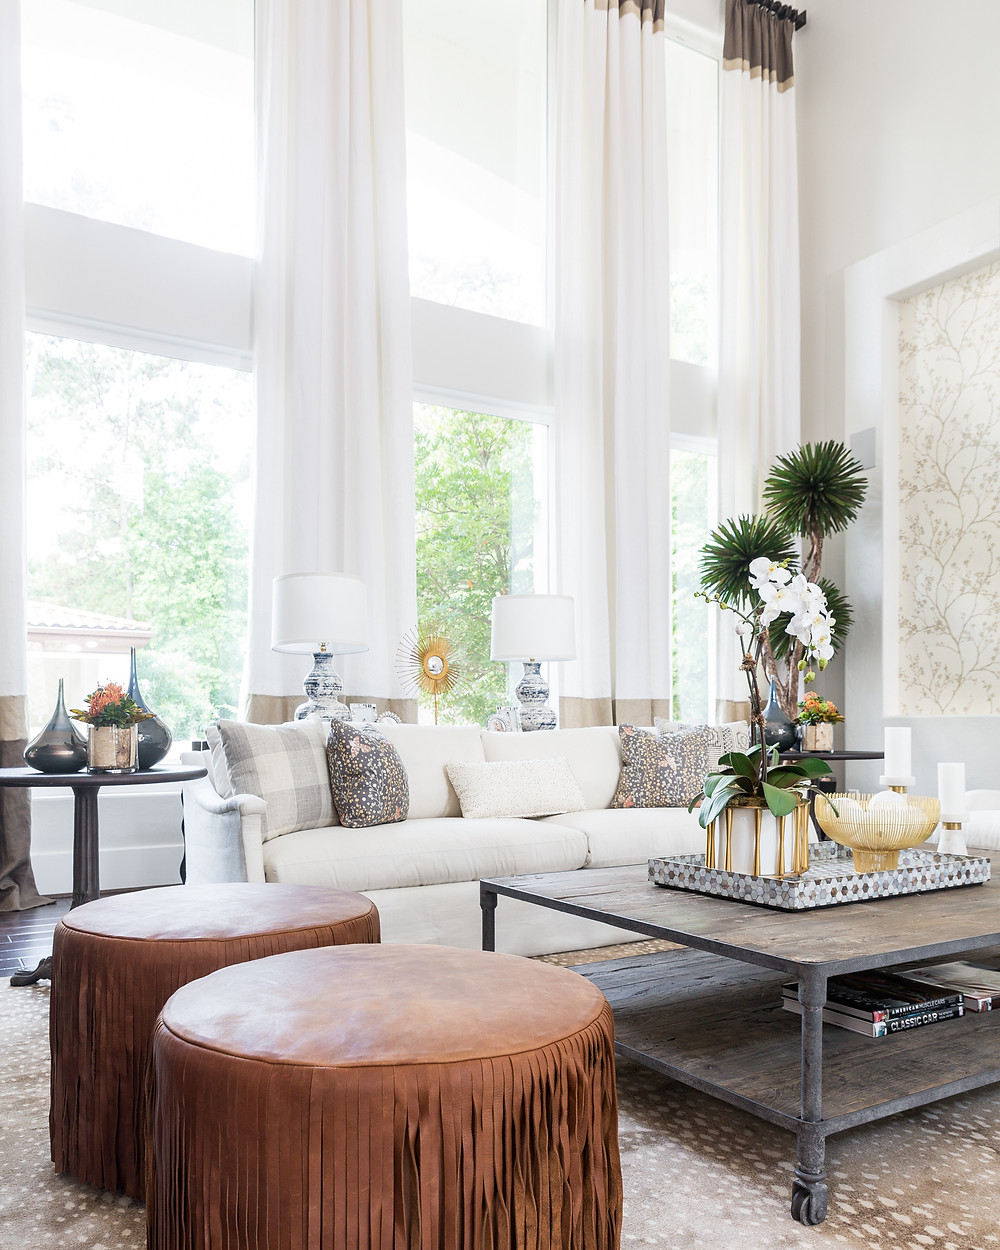 Living room vignette with white skirted sofa in linen fabric by Lee Industries